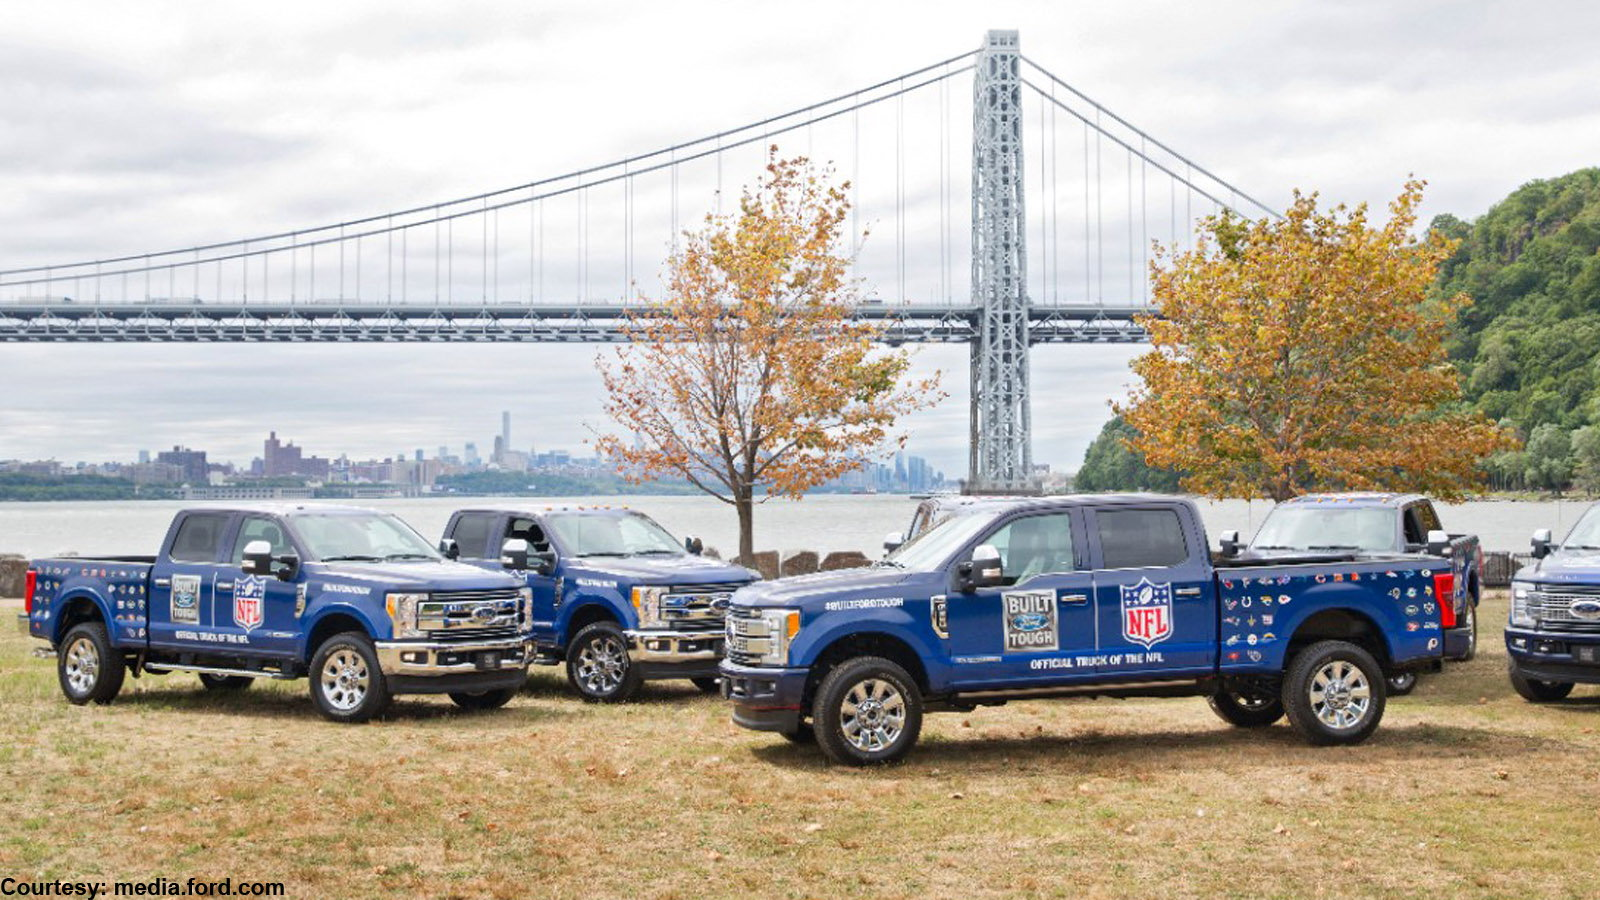 Ford becomes the official truck of the NFL